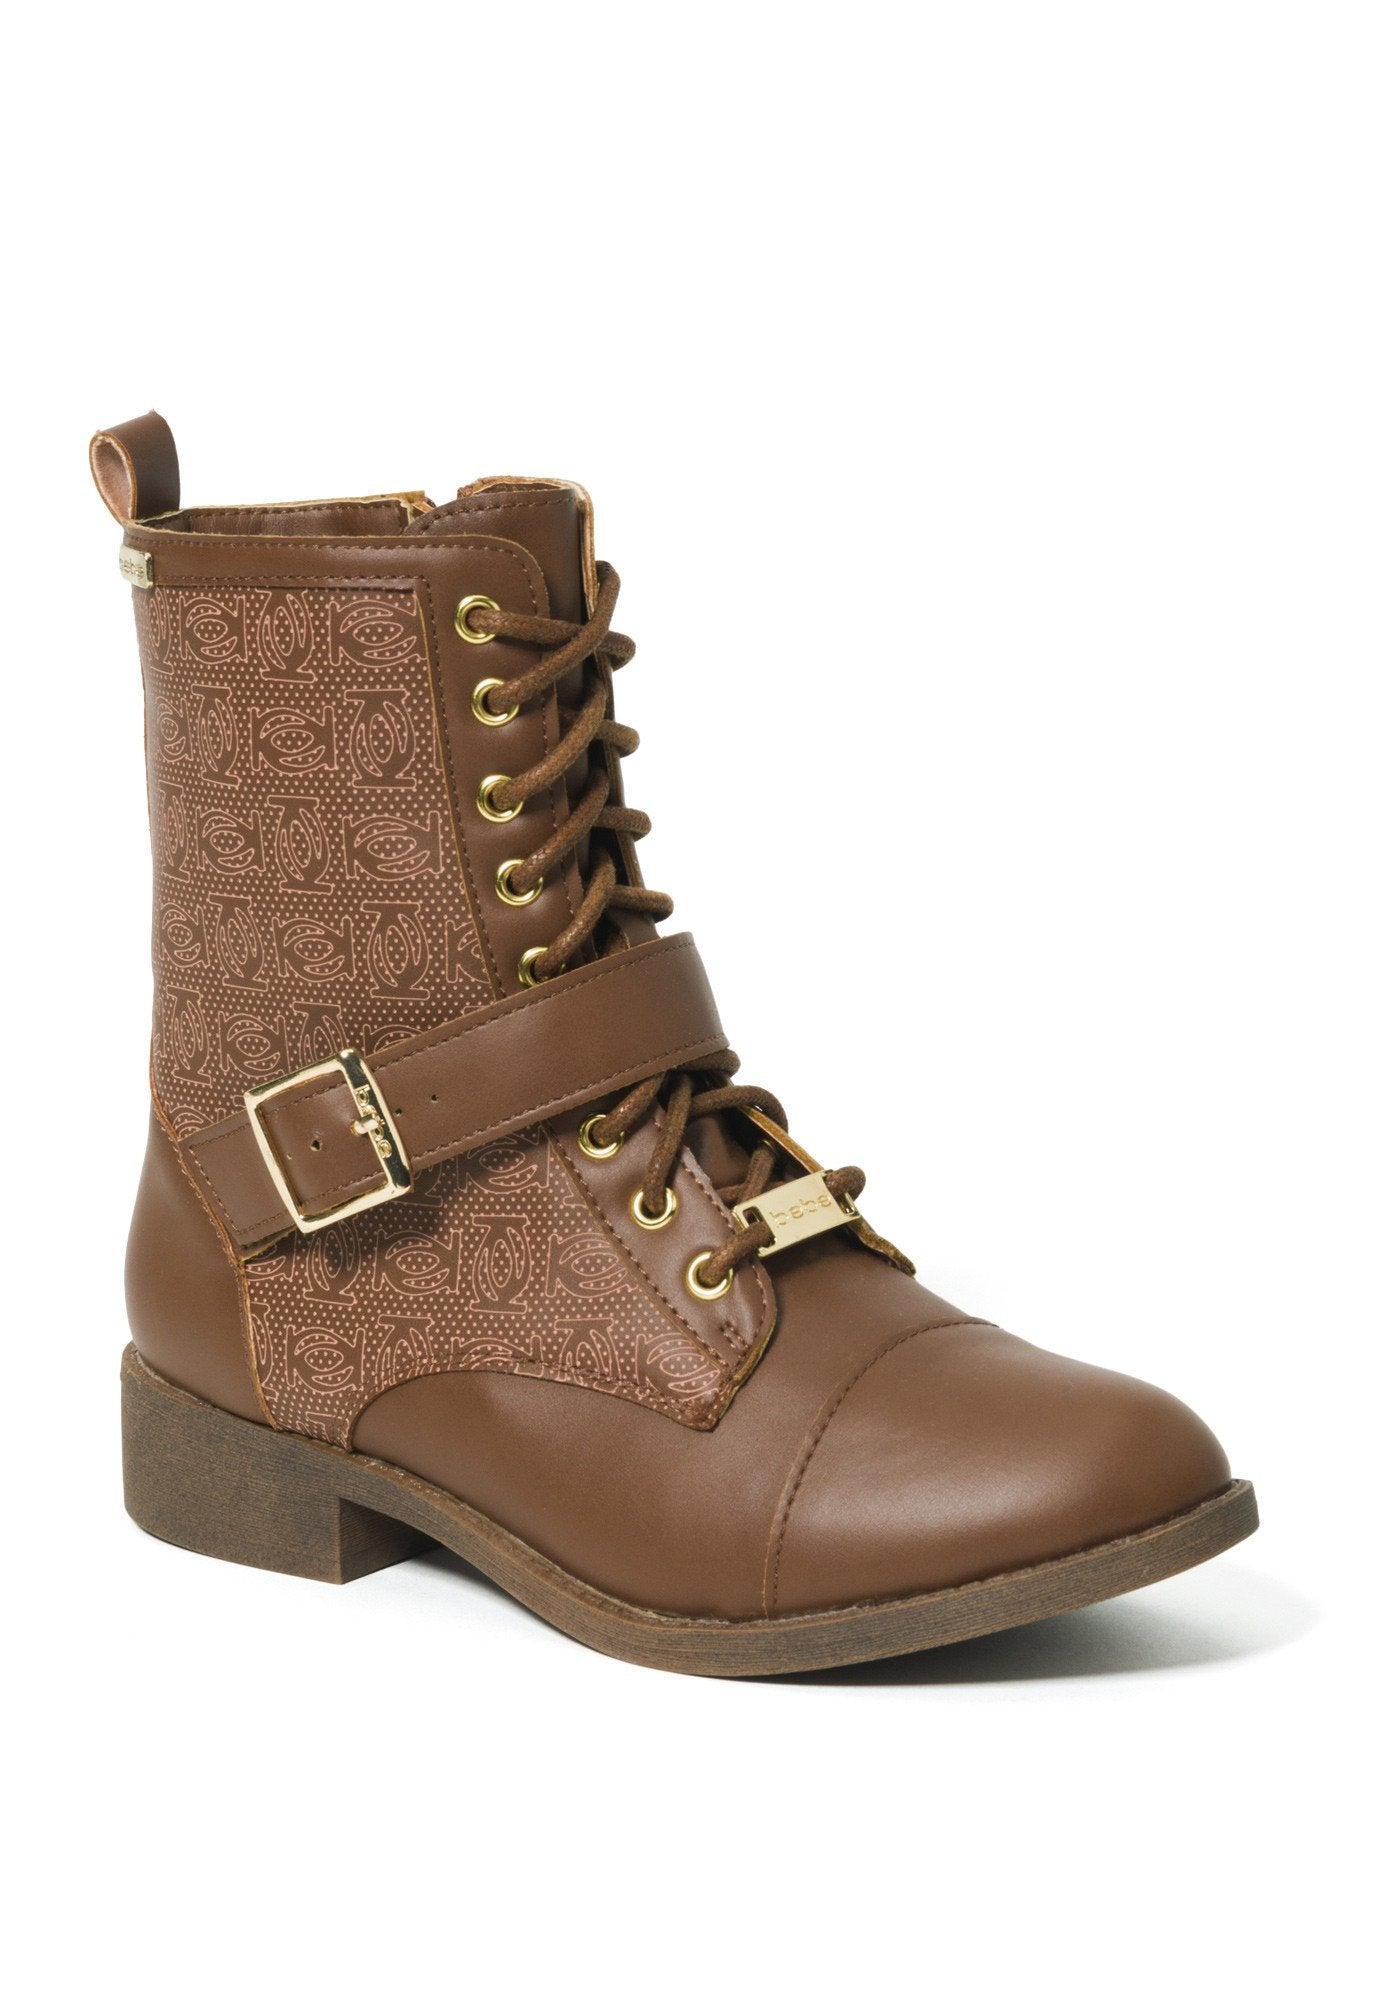 Bebe Women's Ofeibea Logo Ankle Boots, Size 6 in Cognac Synthetic